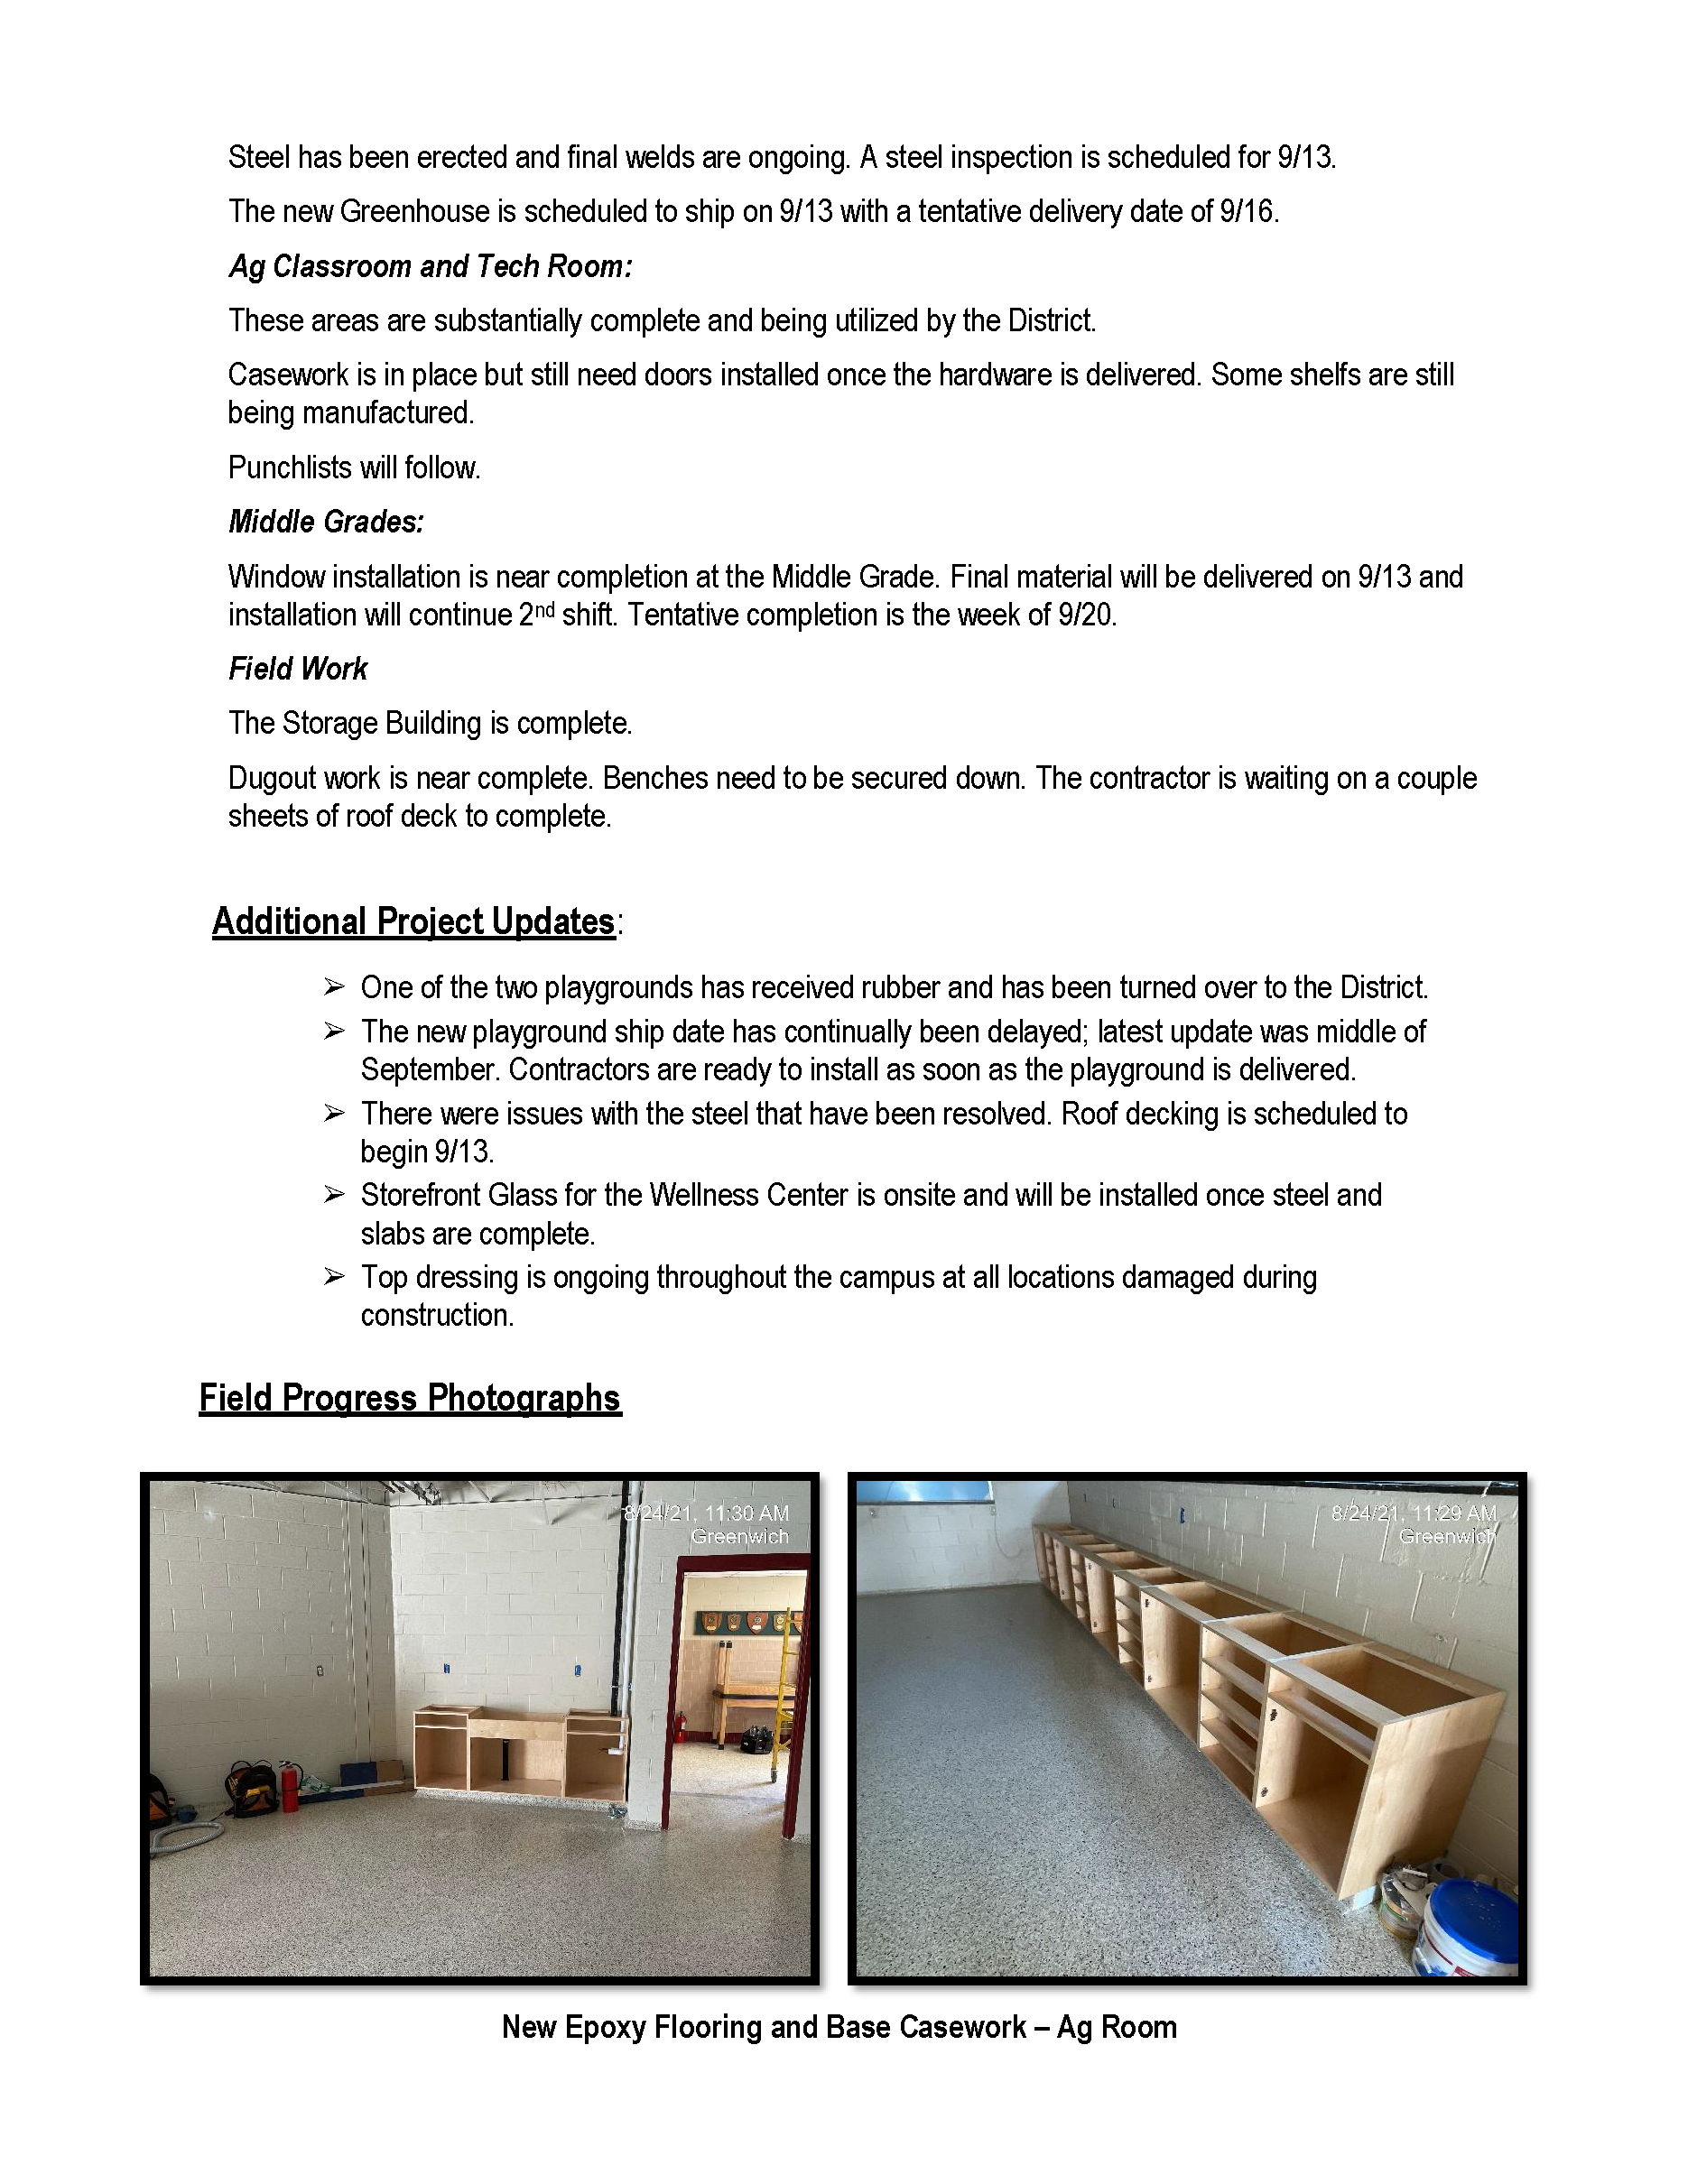 Project Report 9-13 P2